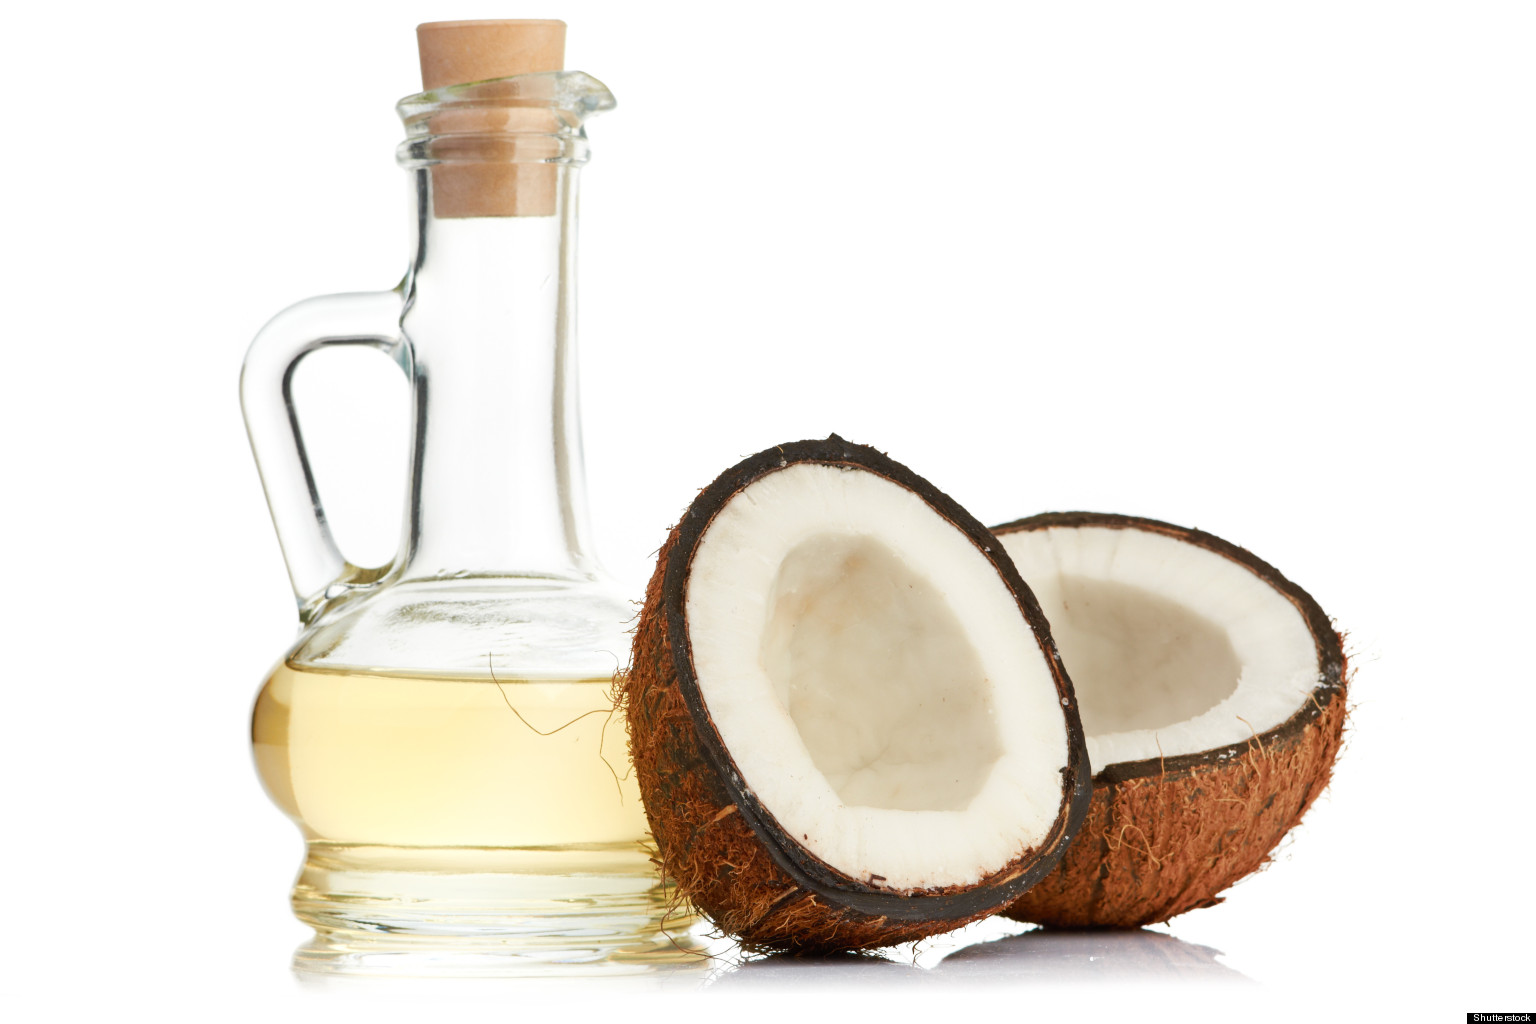 Coconut oil is a girls best friend. Apply to your hair, leave for about half an hour and wash your hair as normal. Your hair will be irresistibly soft!